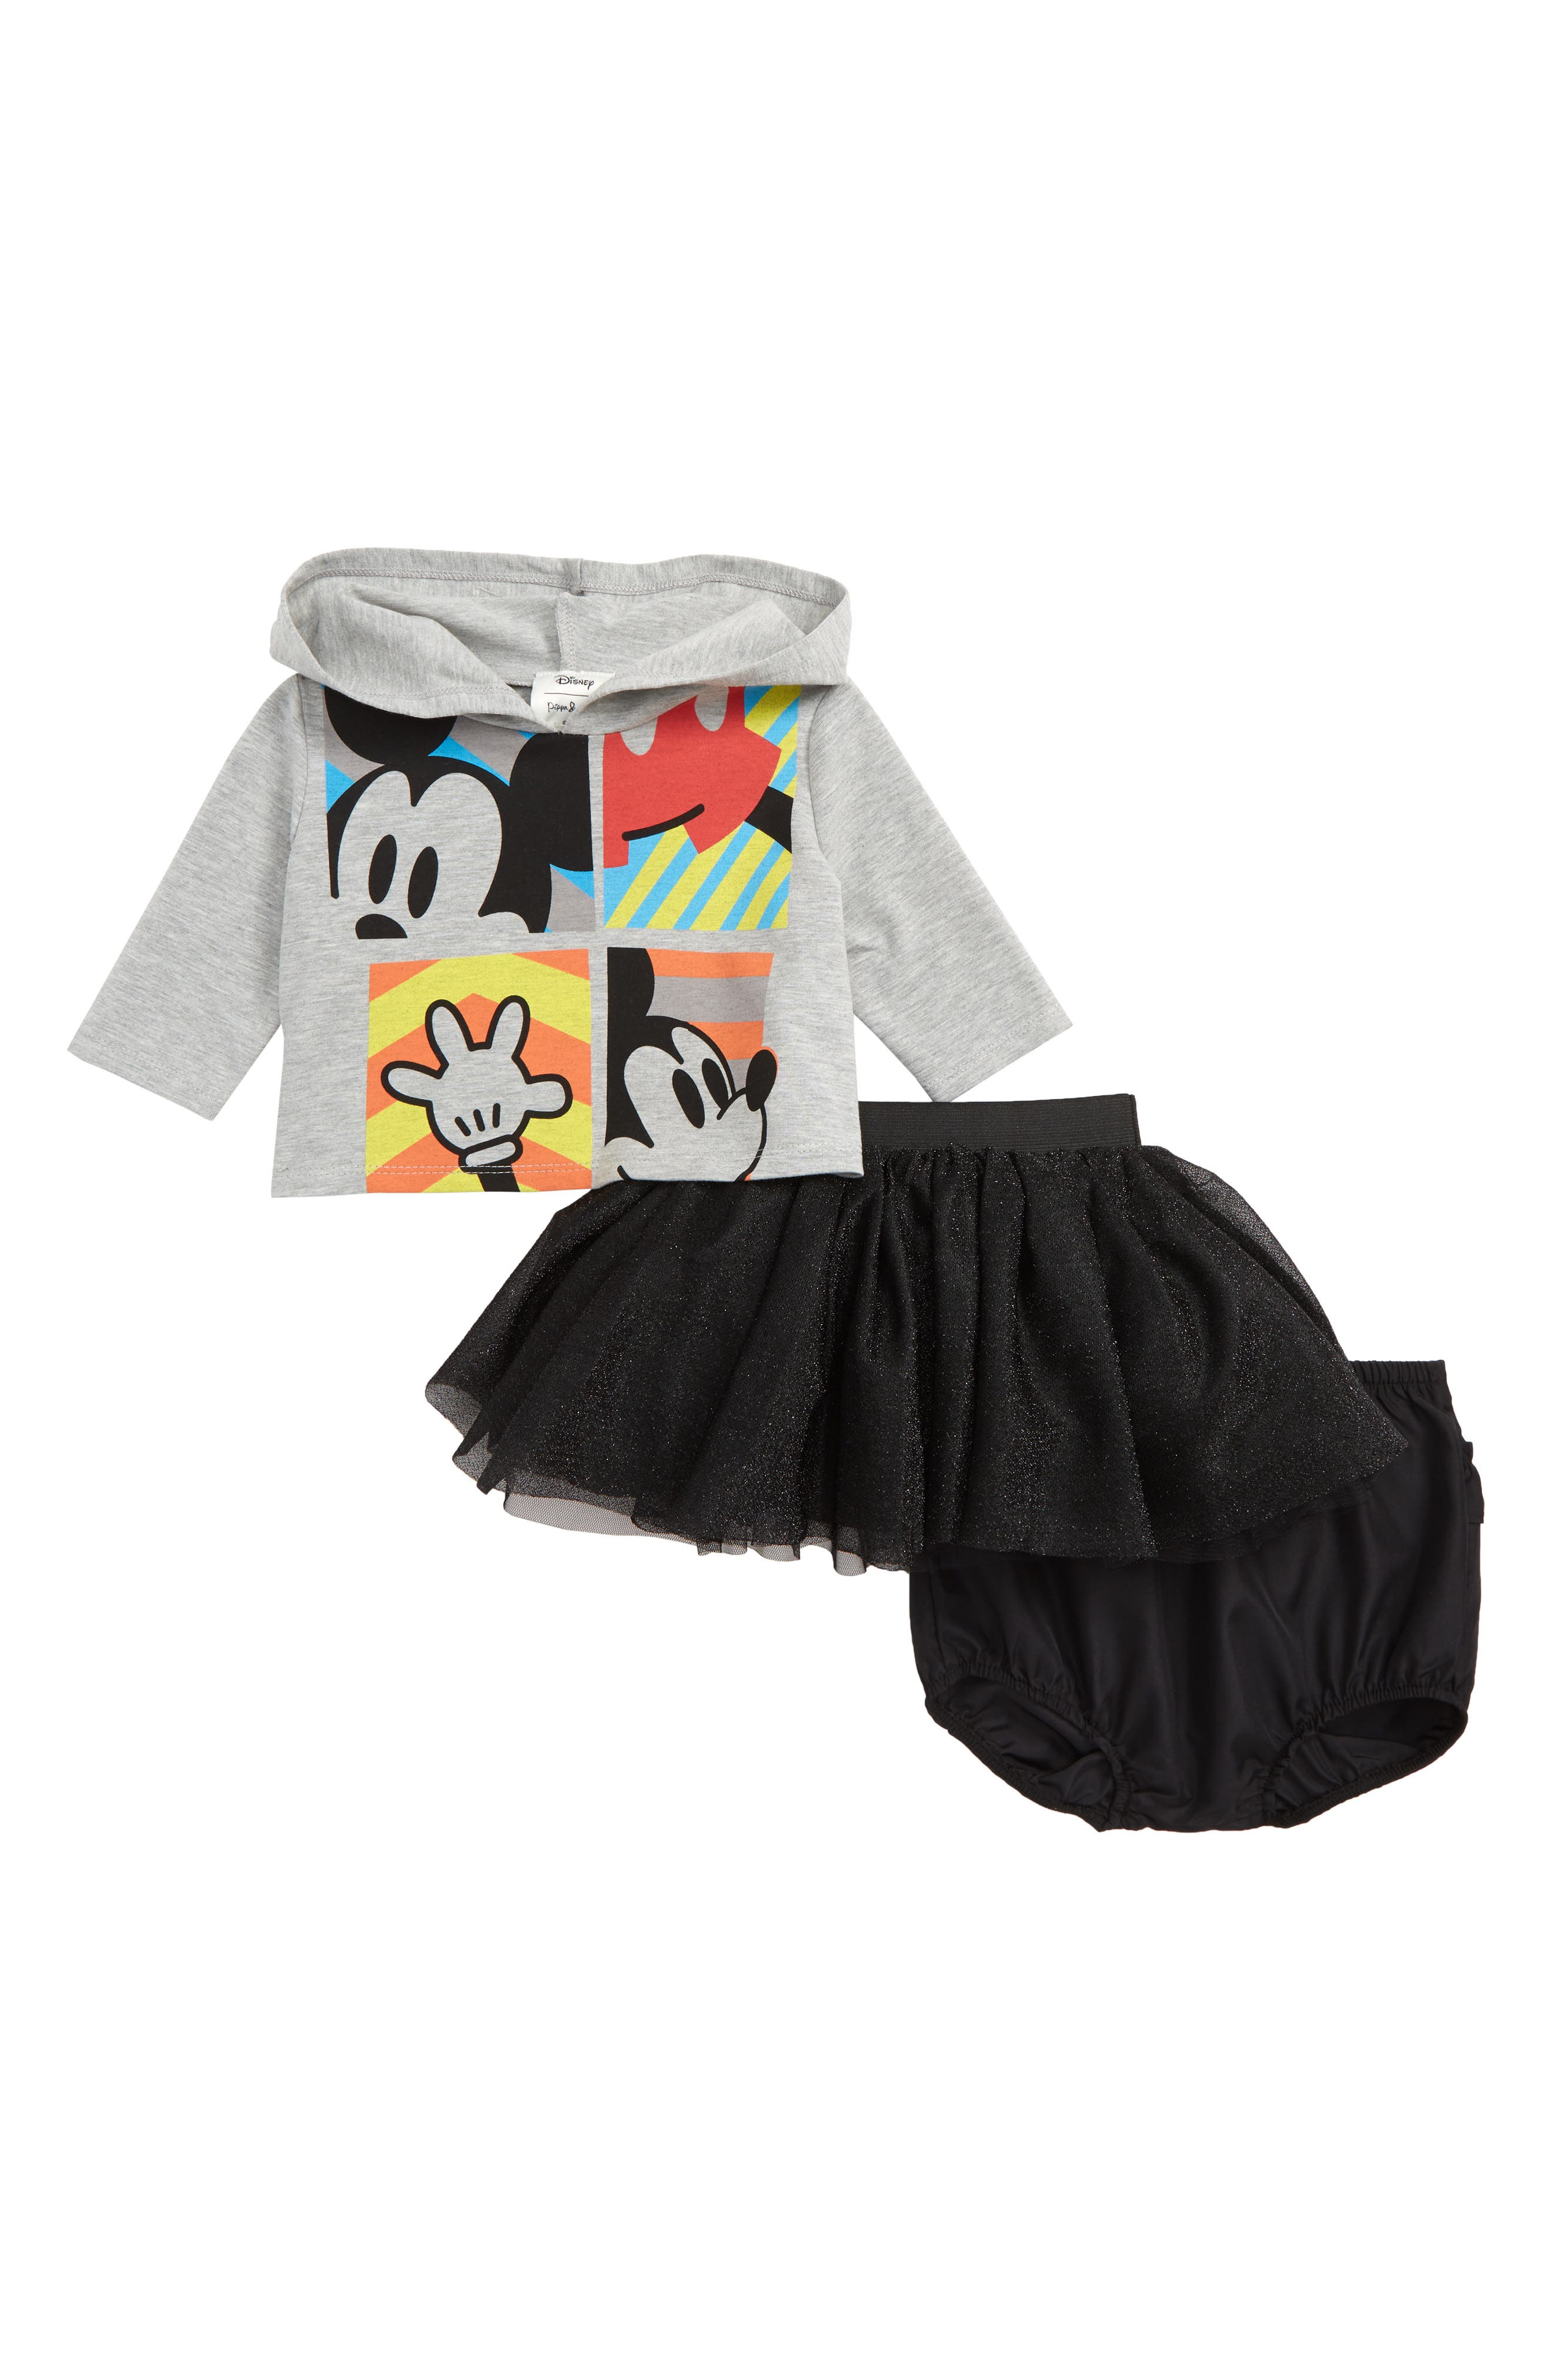 x Disney<sup>®</sup> Mickey Mouse Hoodie, Tutu & Bloomers Set,                             Main thumbnail 1, color,                             020